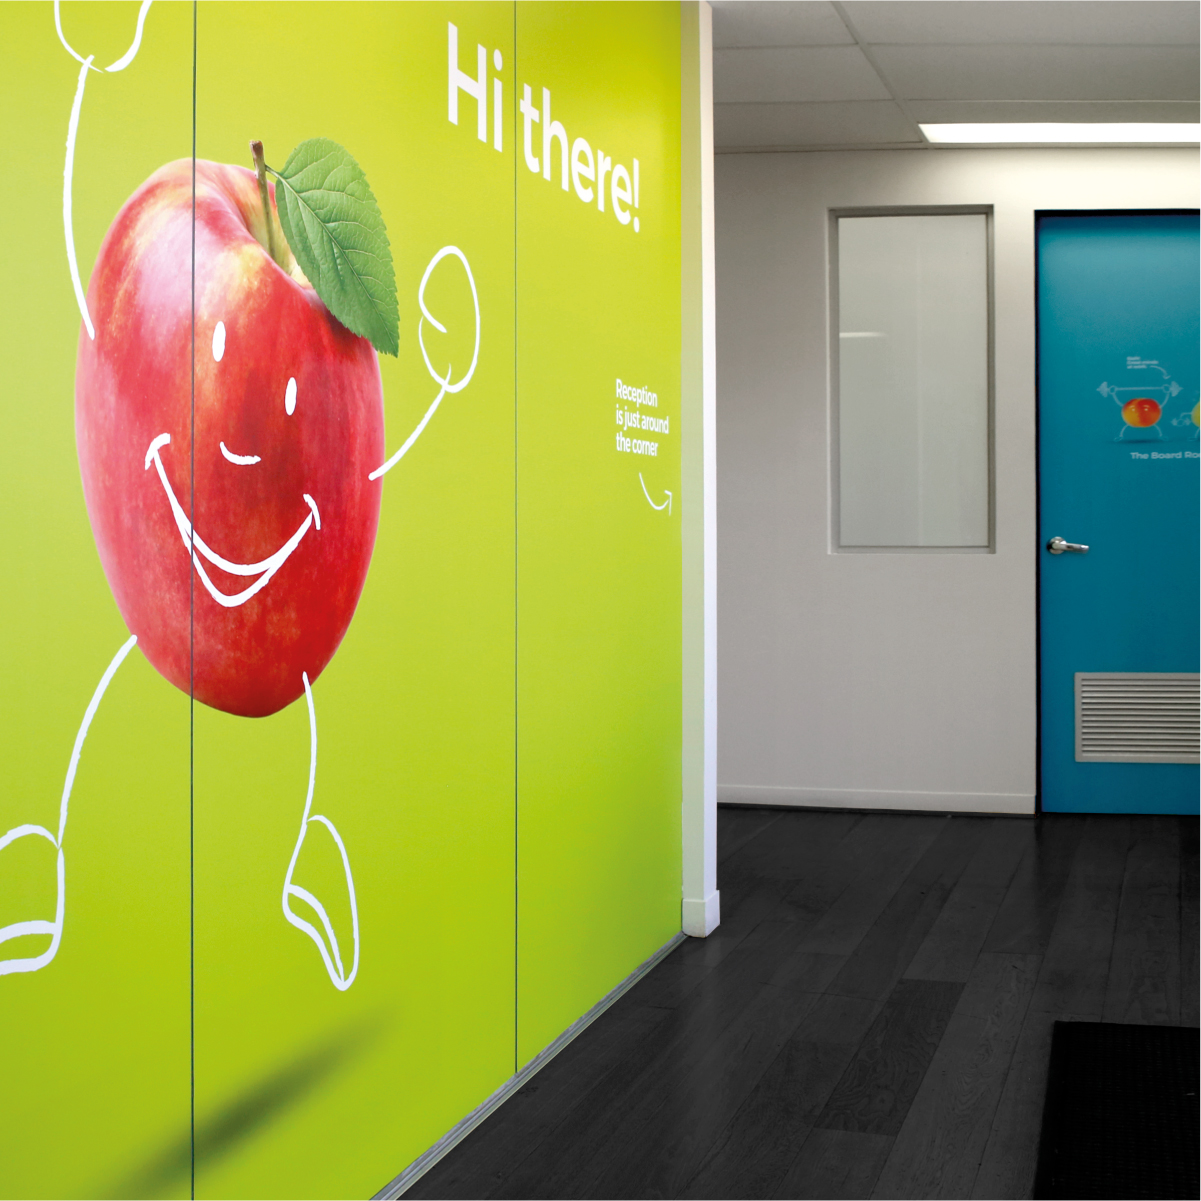 Davidson Branding Business Strategy The Fruit Box Visual Language Entrance Signage